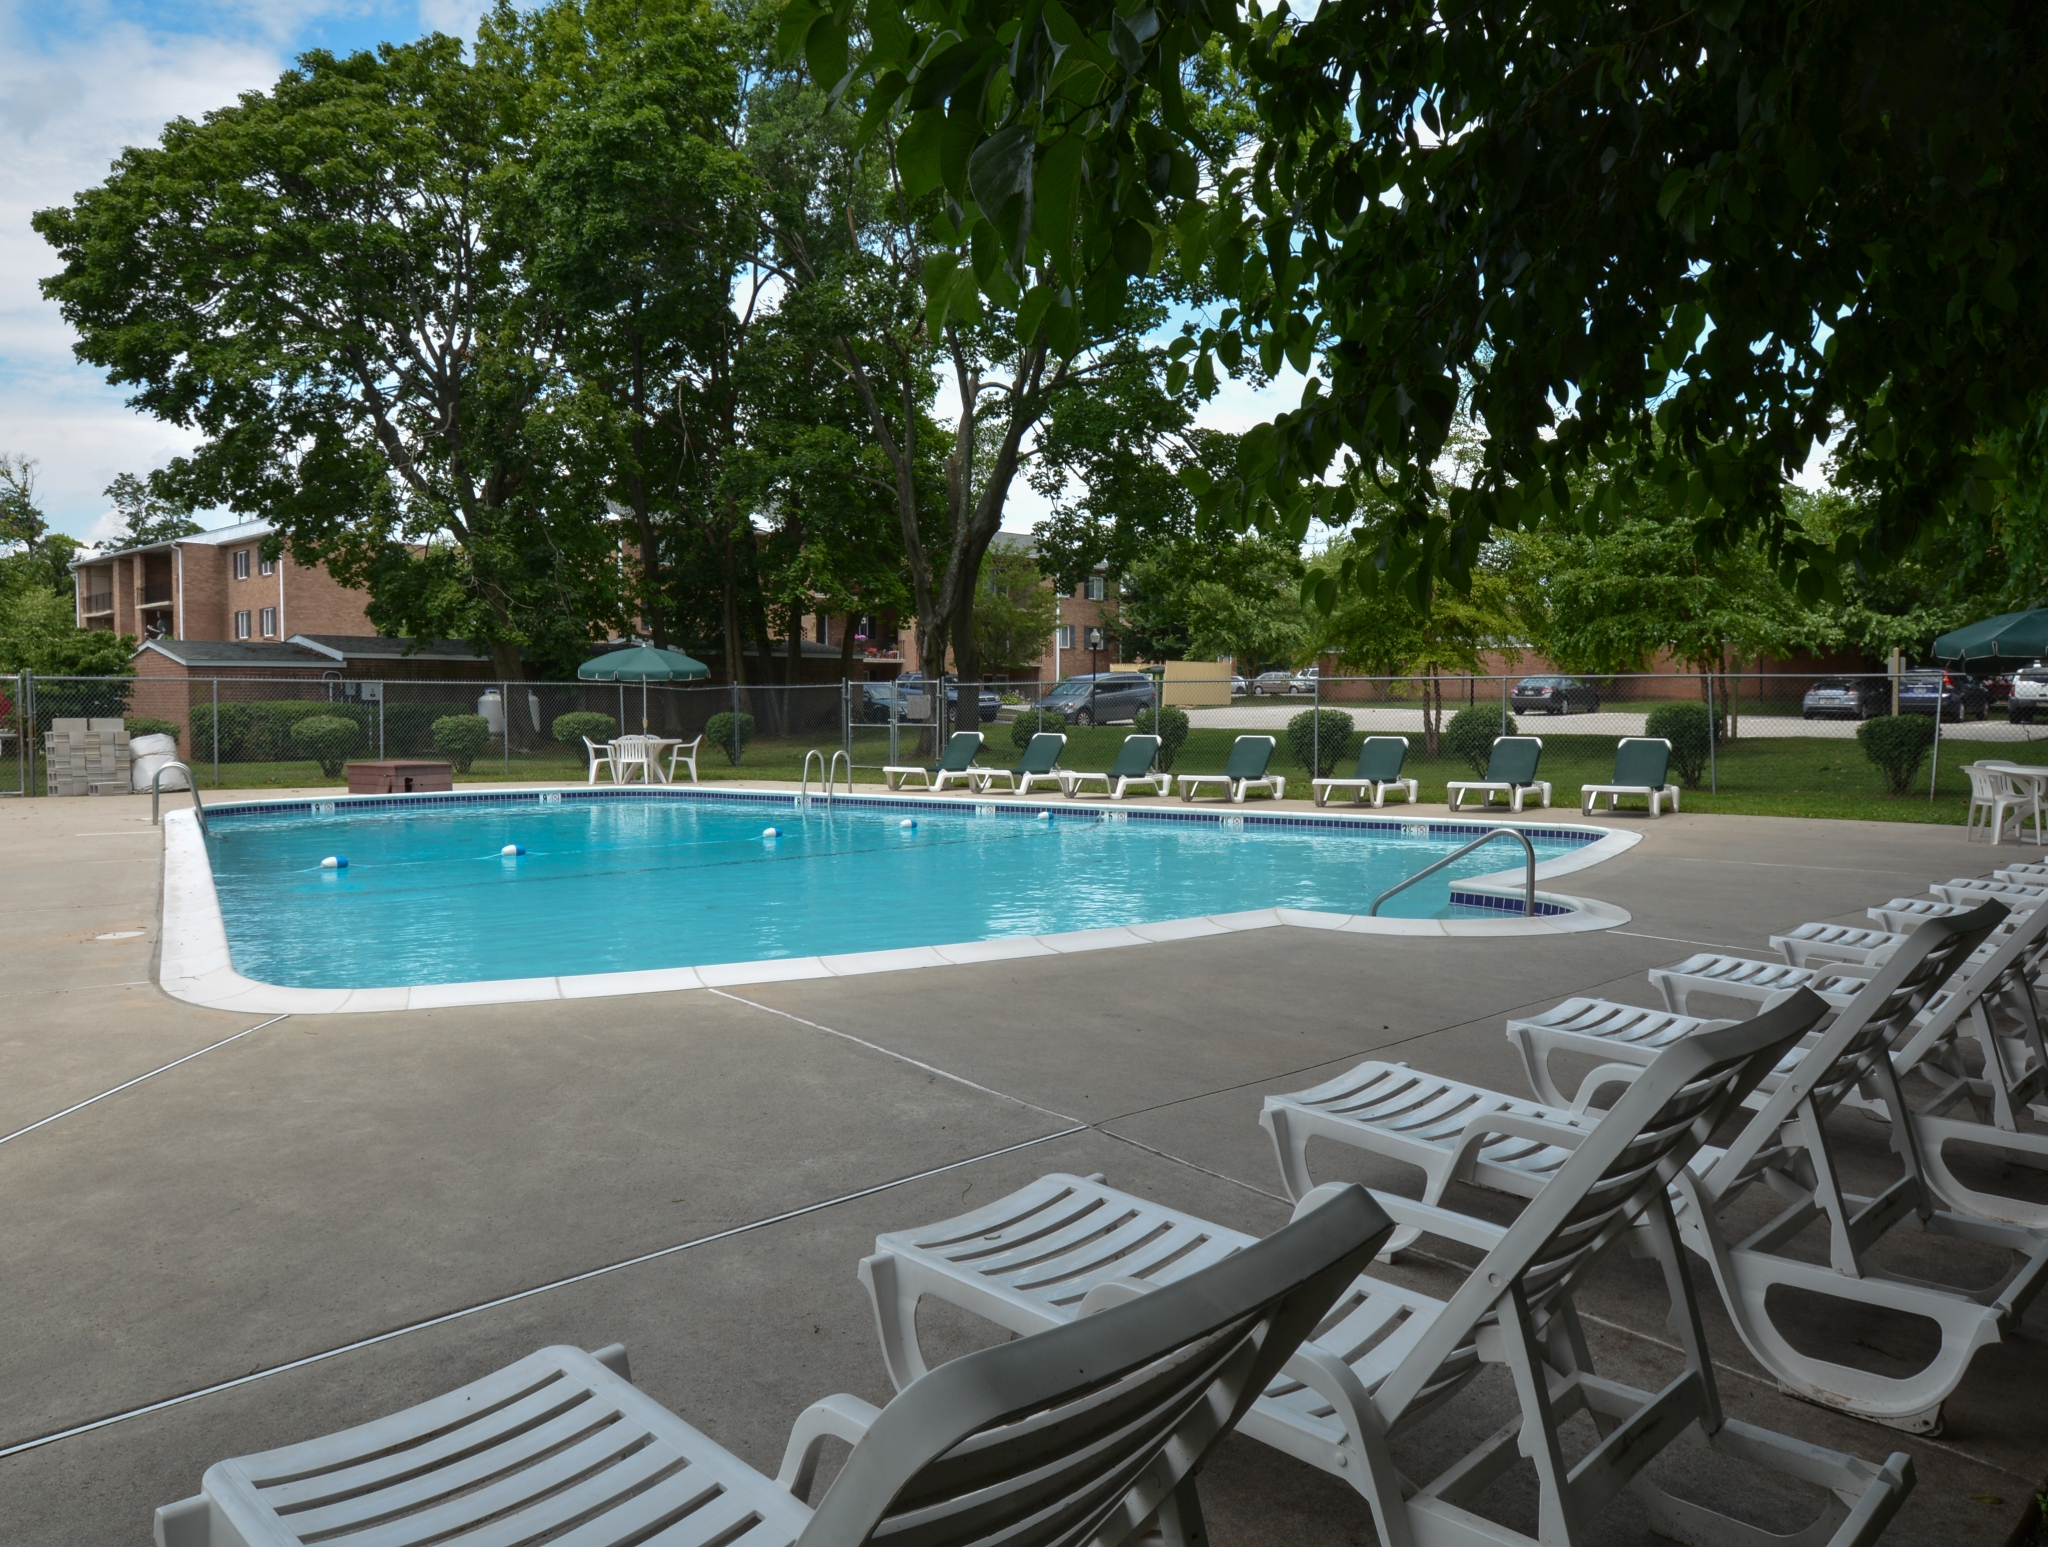 Sparkling Pool | Apartments for rent in Paolli, PA | Paoli Place Apartments and Townhomes